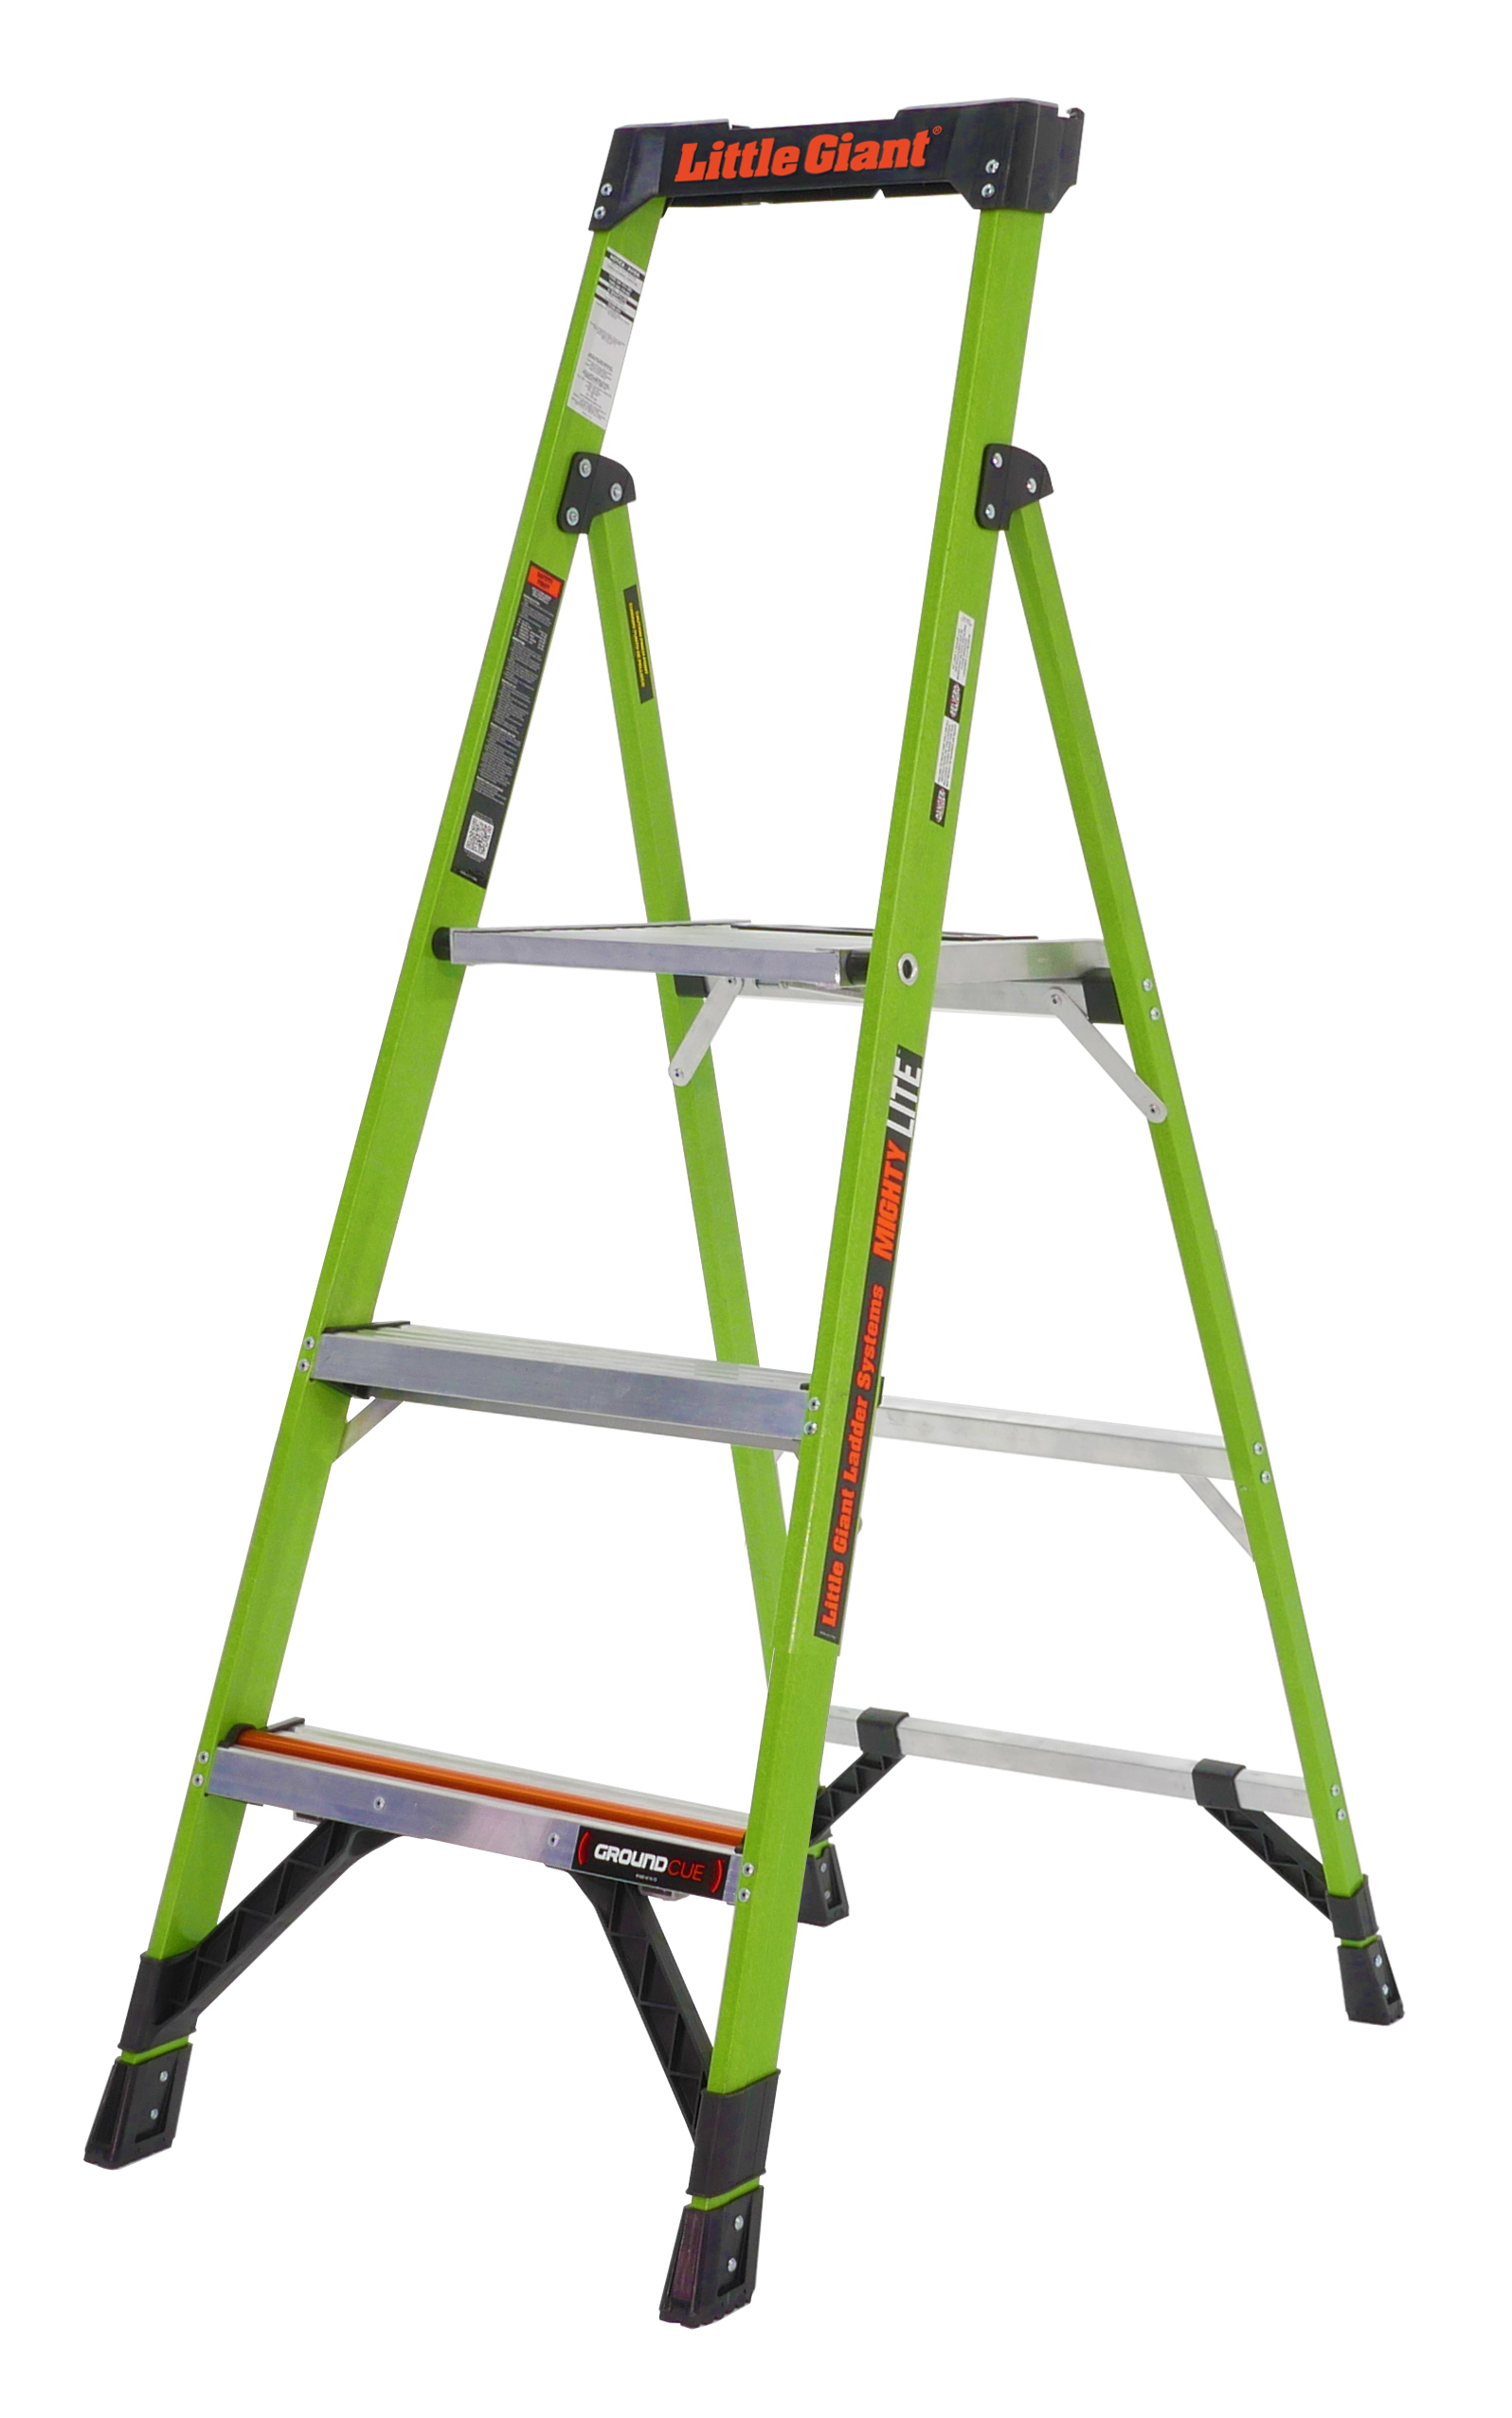 Little Giant MightyLite, Model 5', Type IA 300 lbs rated, fiberglass stepladder by Wing Enterprises, Inc.